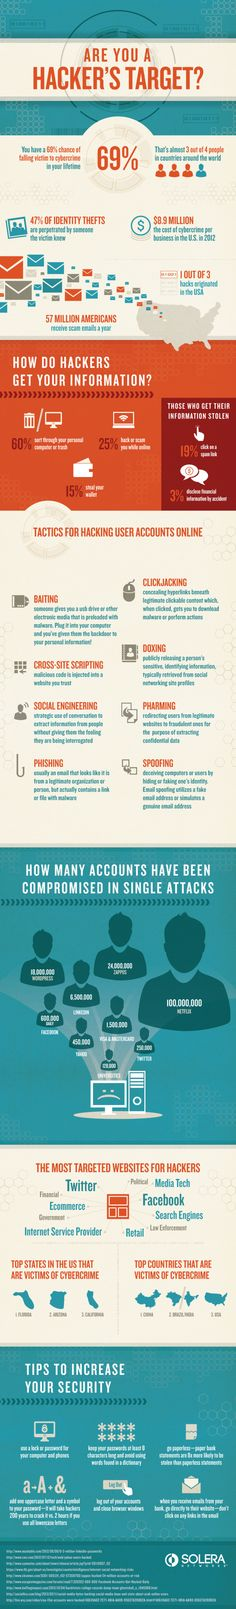 Are you a hacker's target #infografia #infographic #internet